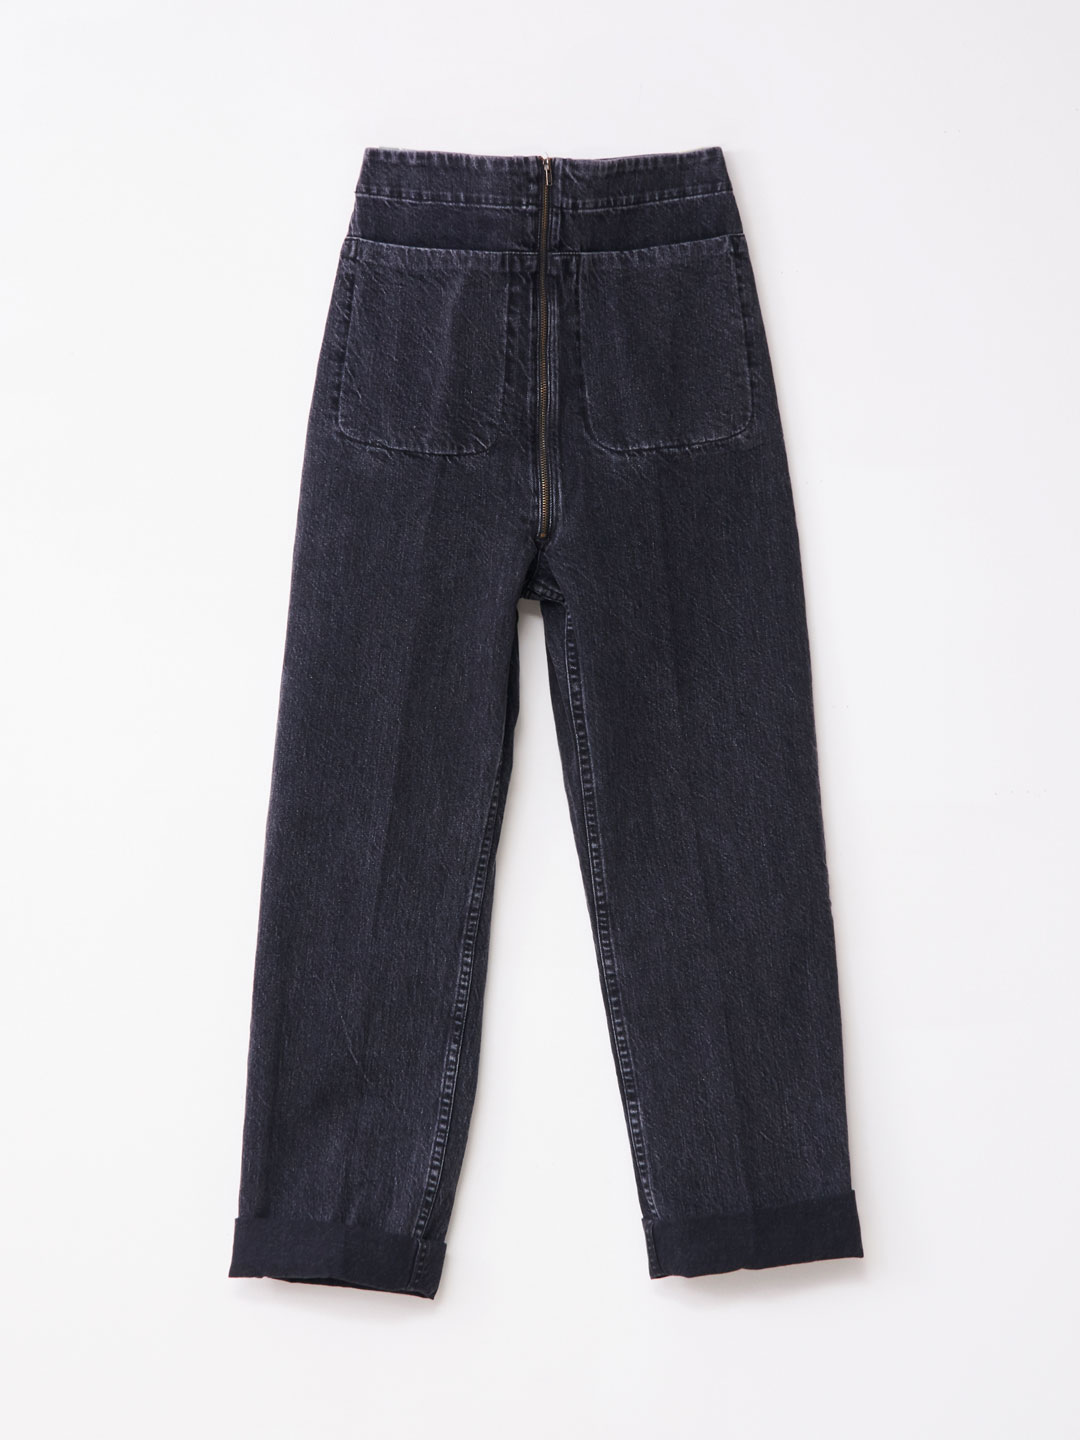 Barrie Pant Washed - Black